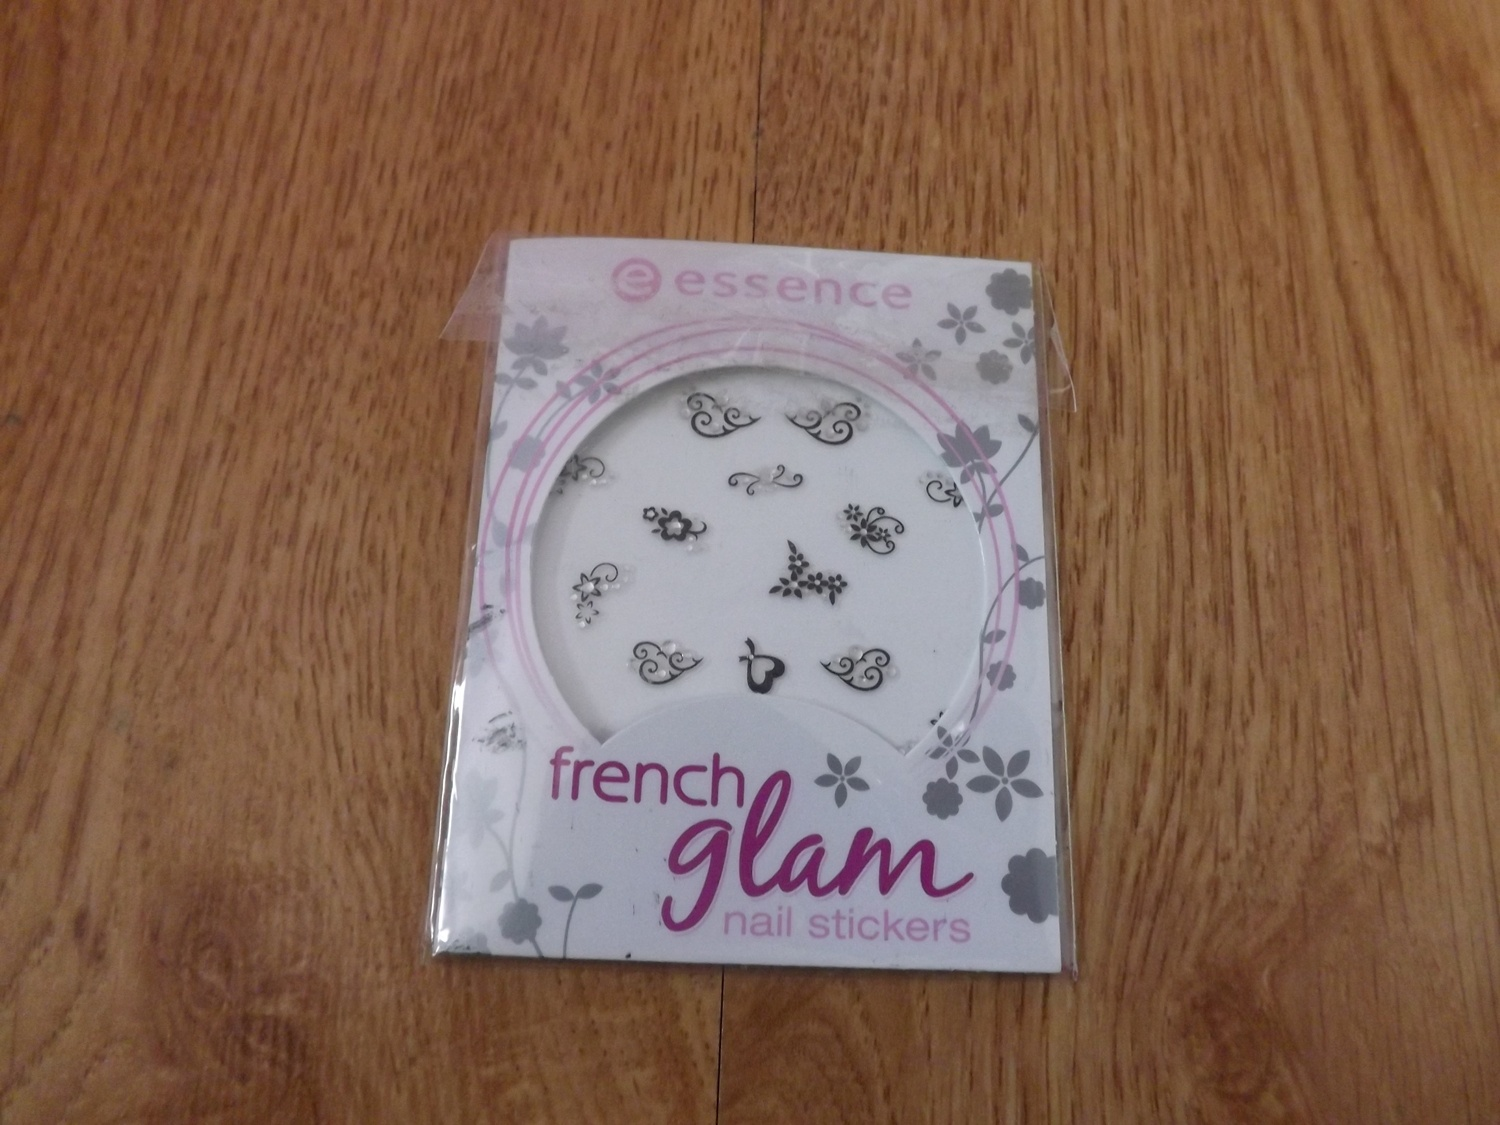 French Glam Nail Stickers - Essence